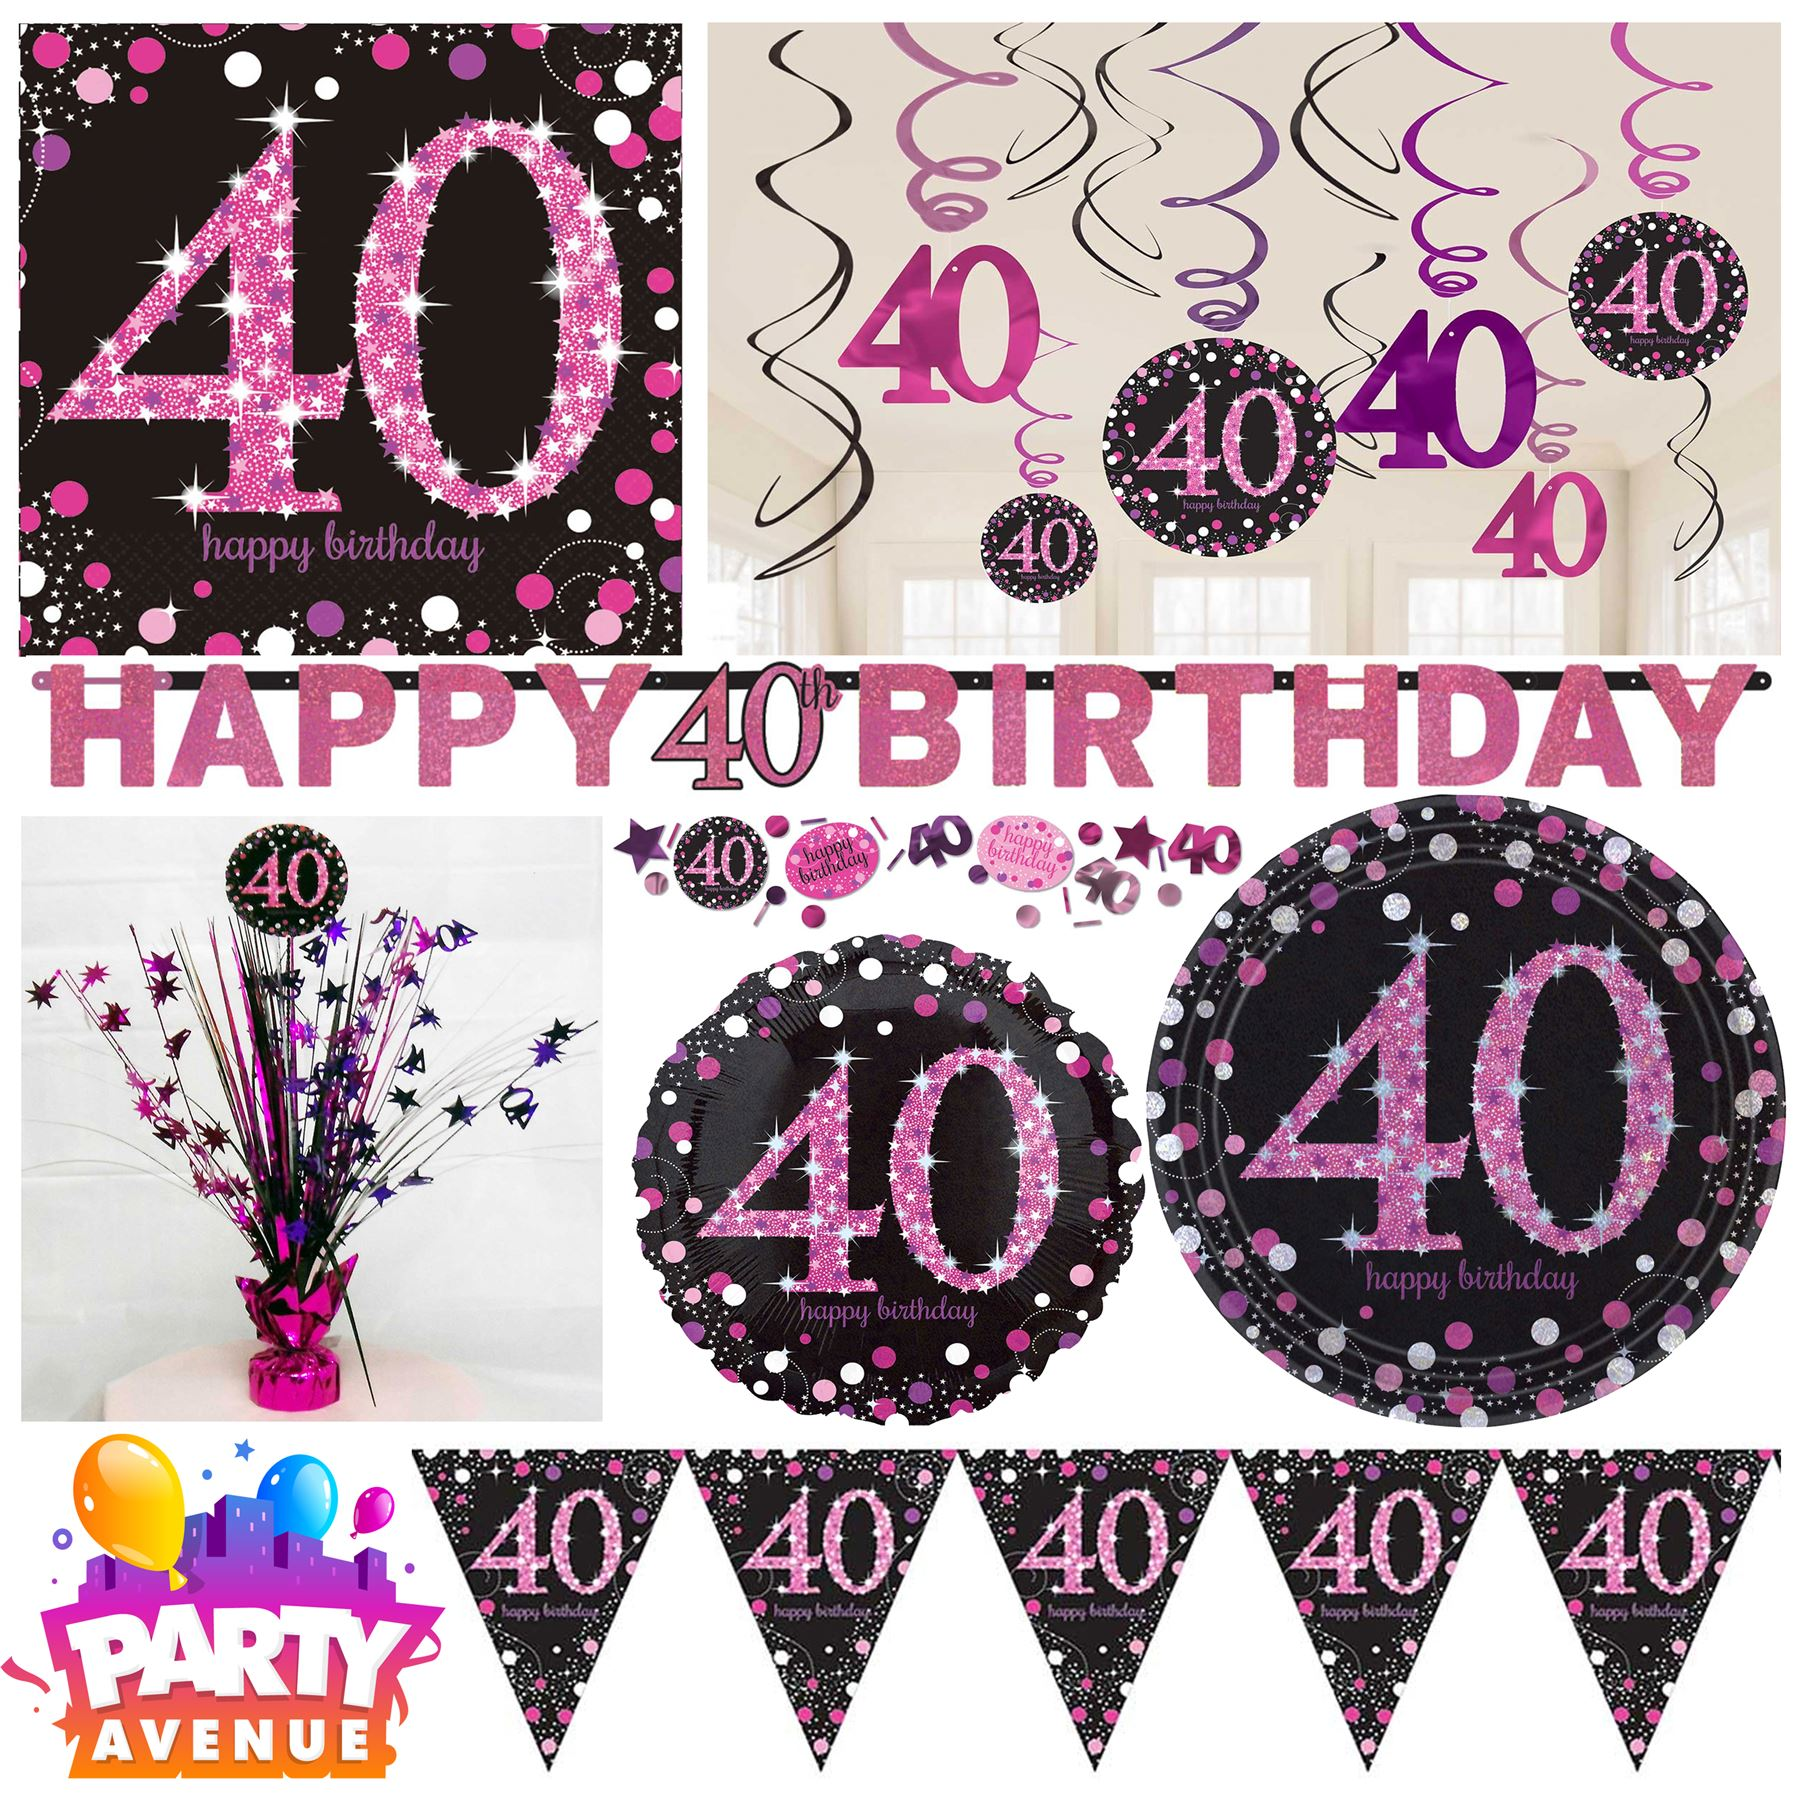 Details About Pink Sparkling Celebration 40th Birthday Party Tableware Decorations Balloons